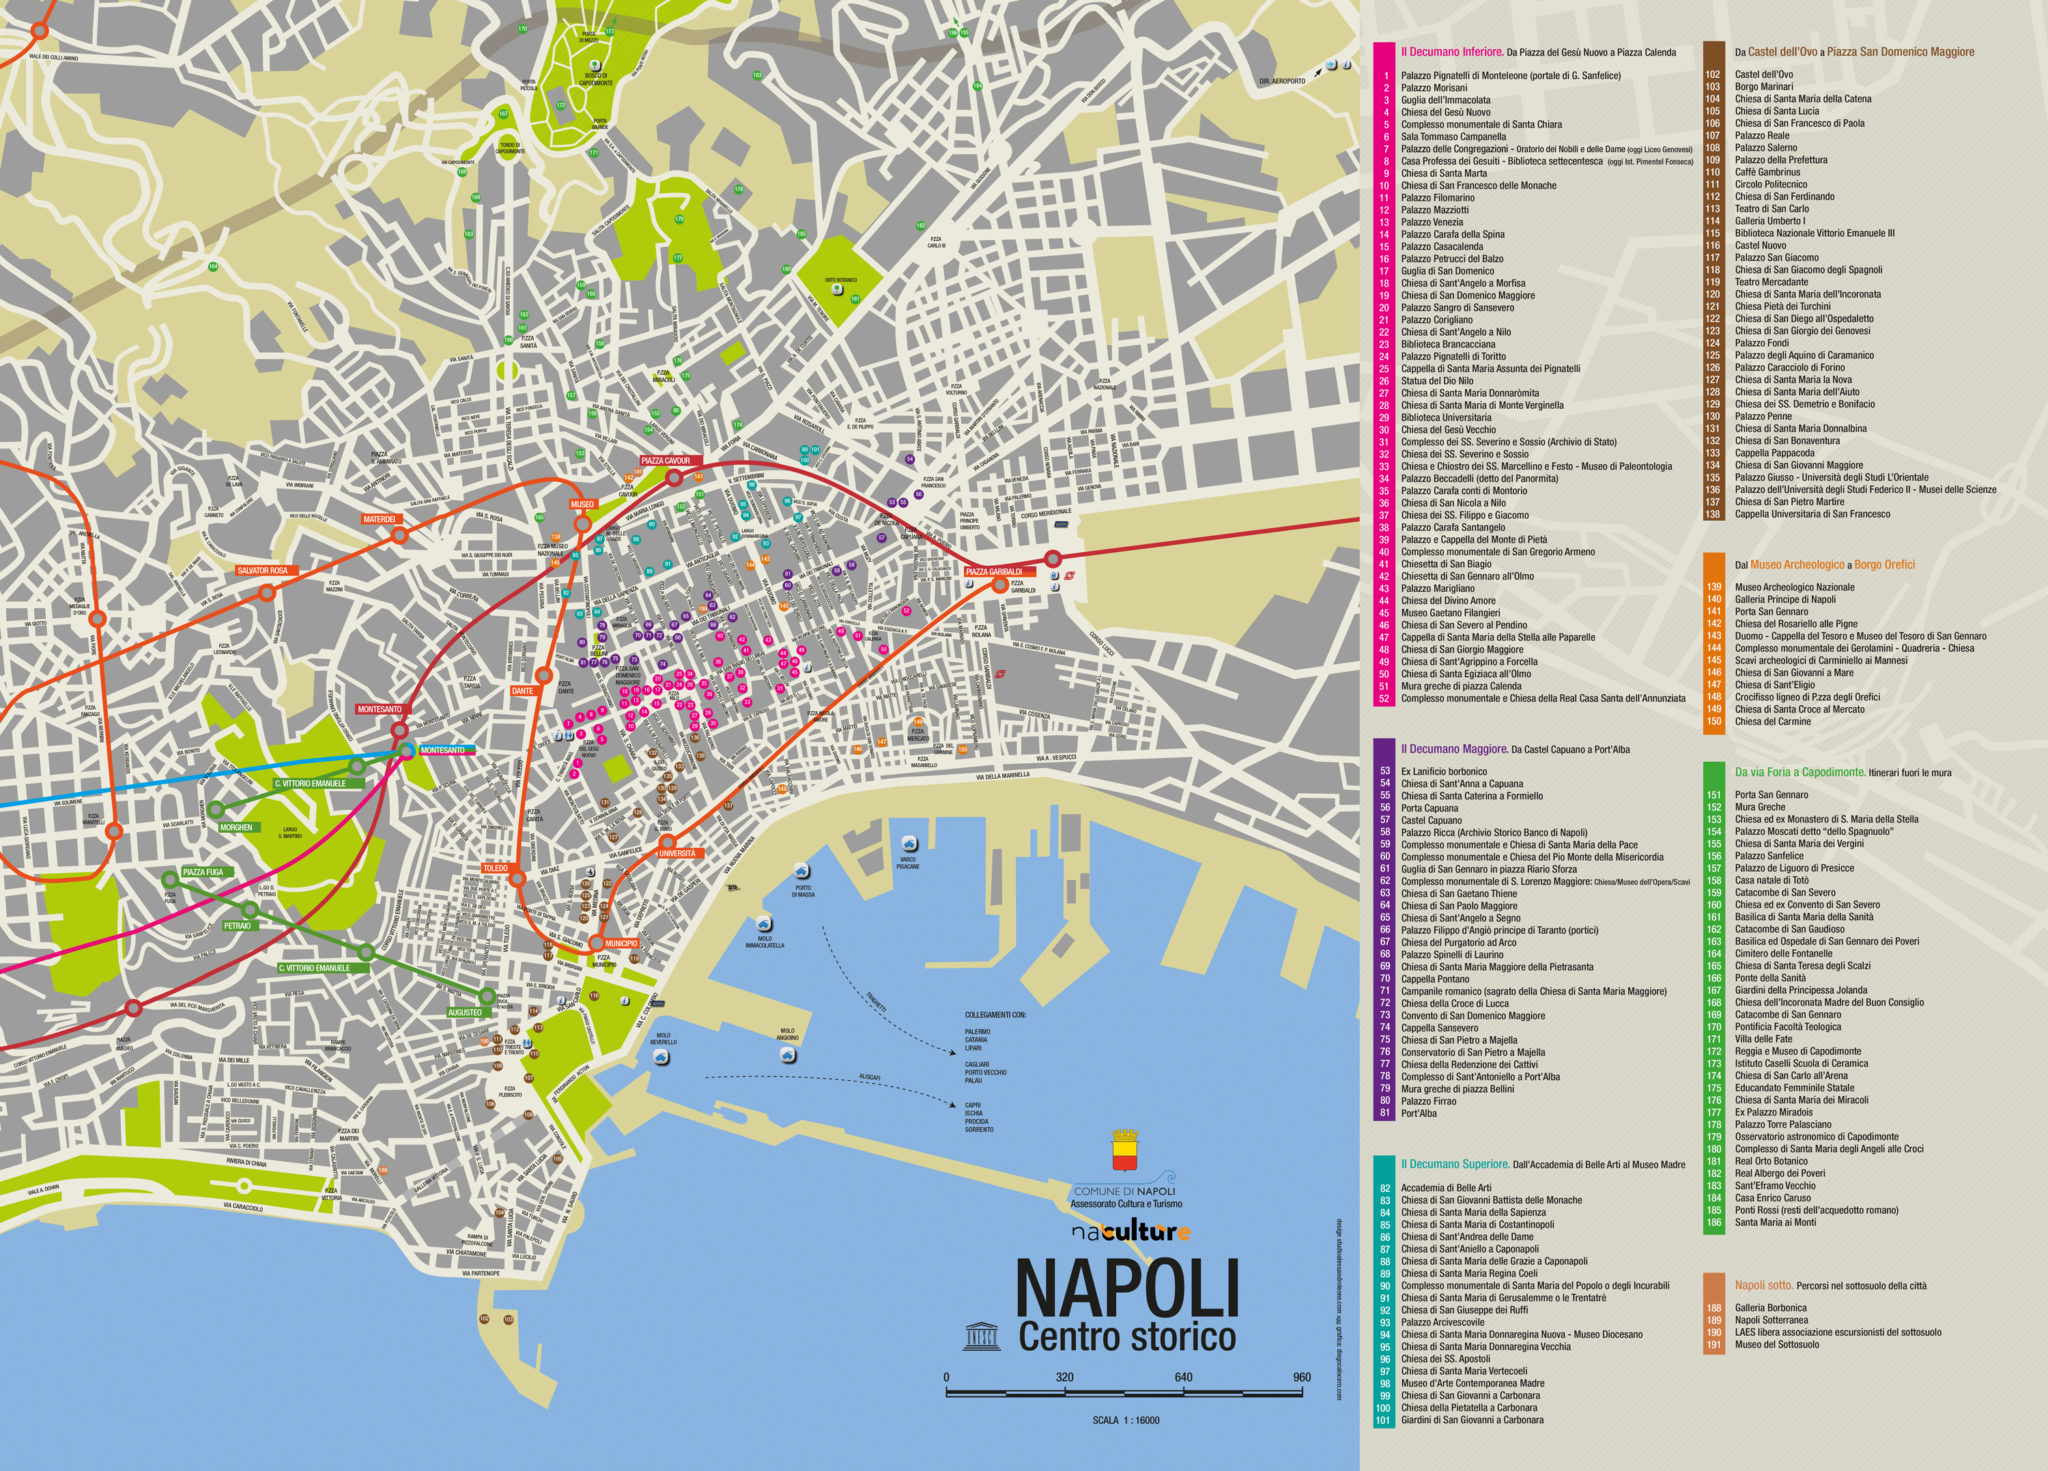 Napoli historic centre